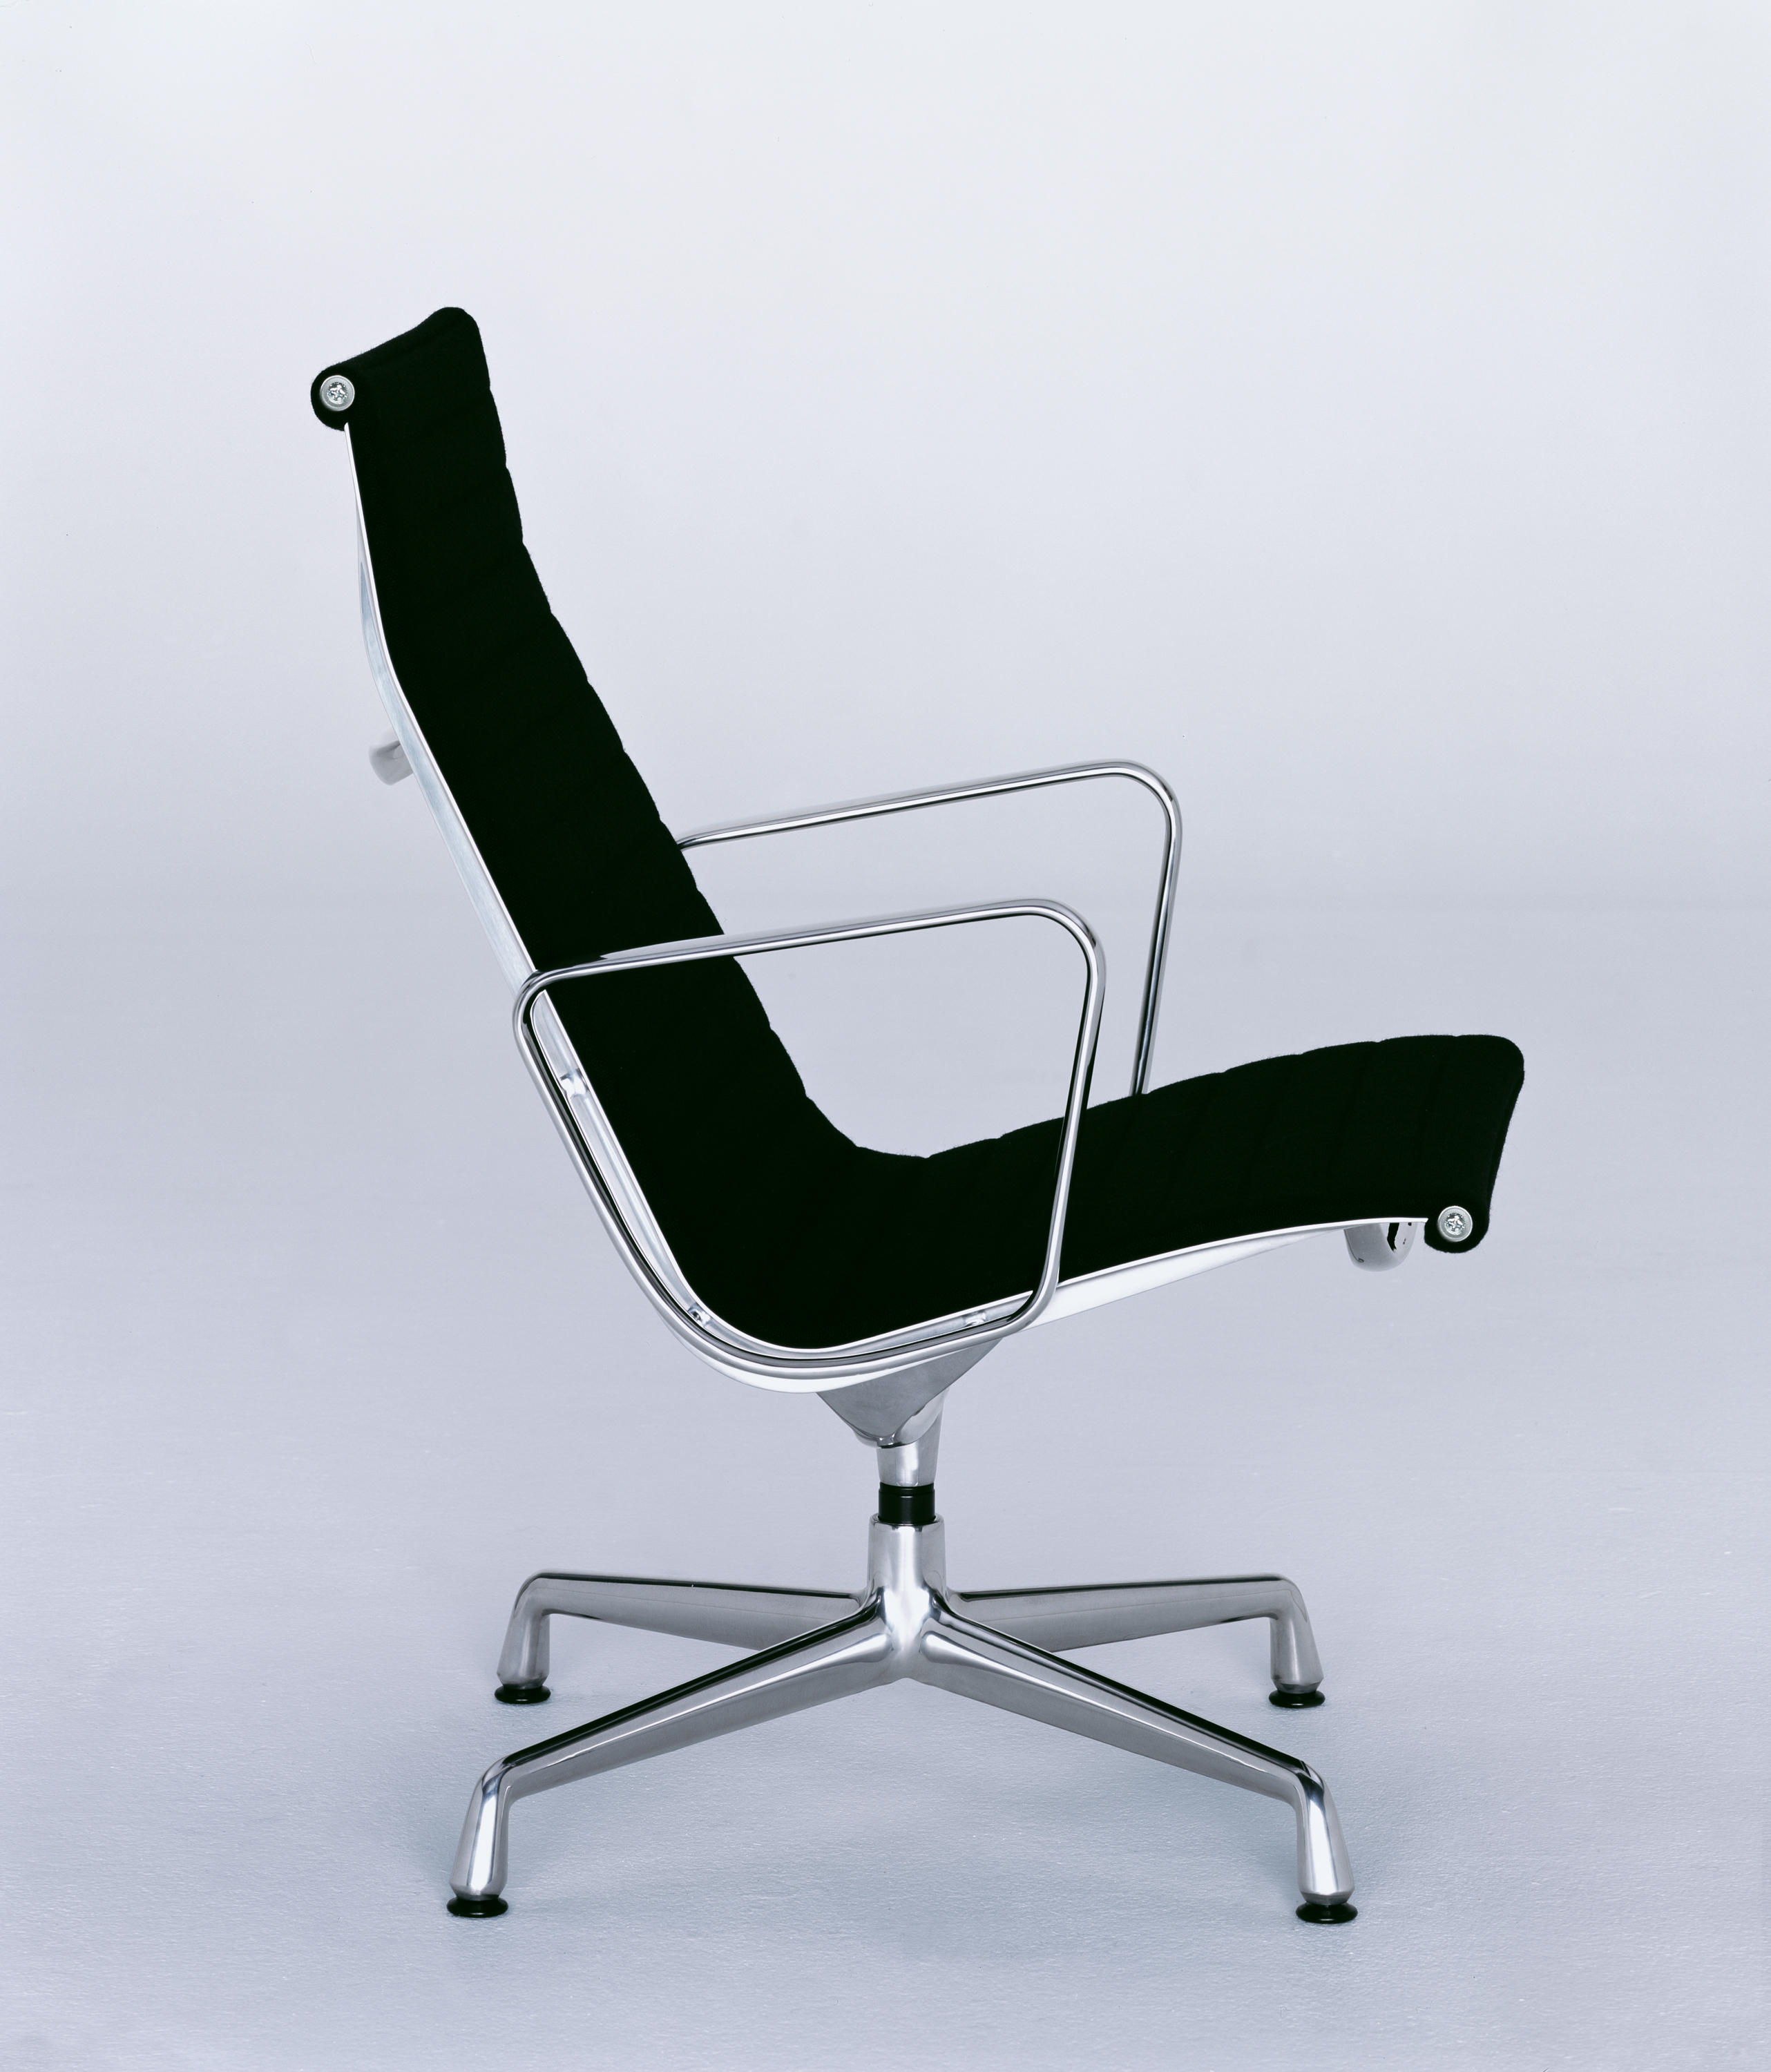 Aluminium Chair Ea 116 Lounge Chairs From Vitra Architonic - Vitra Sessel Alu Chair